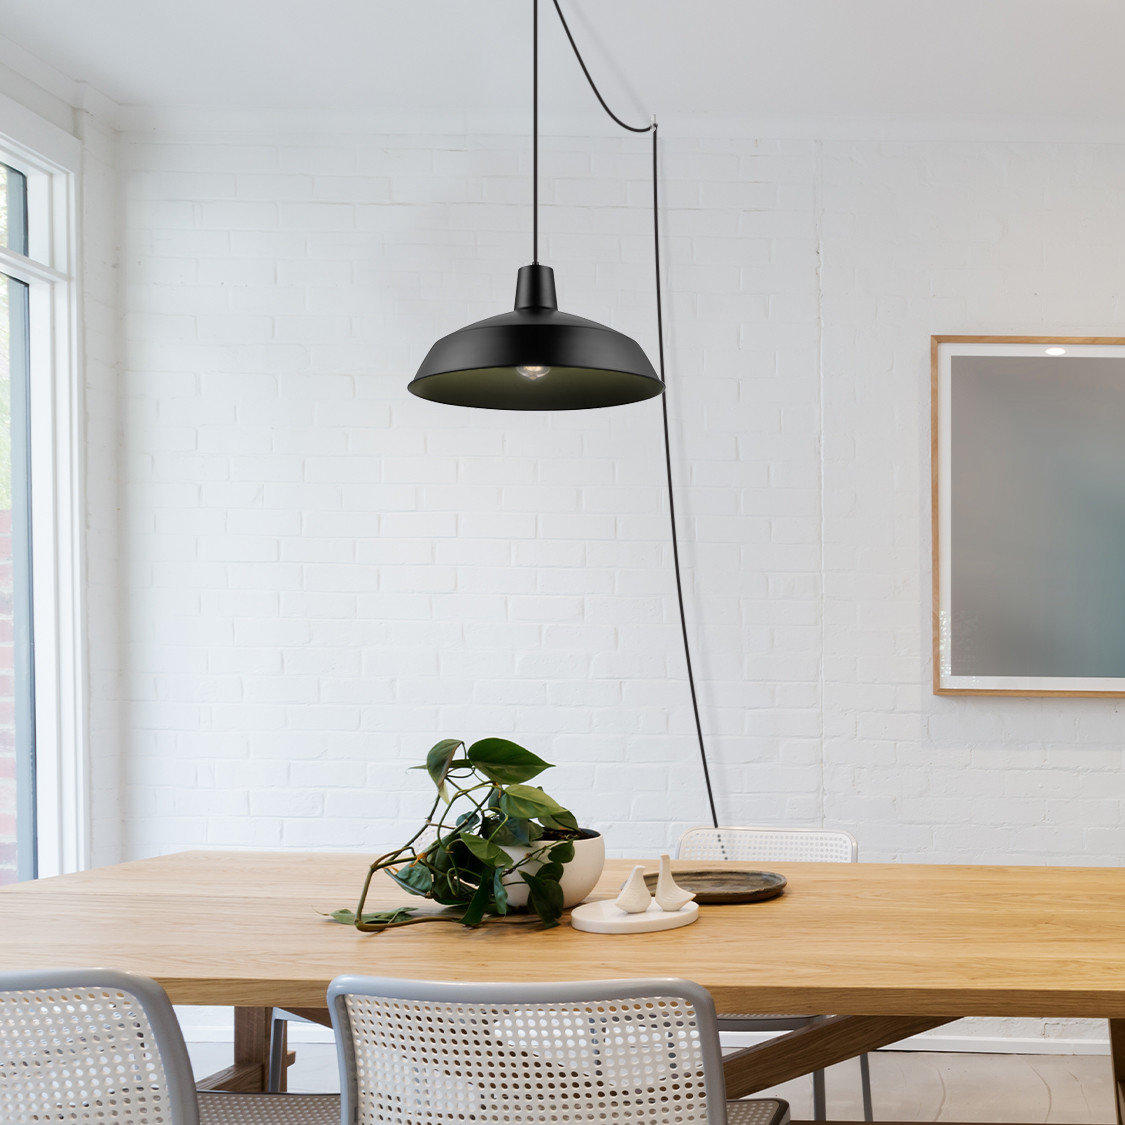 langley street knoxville light geometric pendant birch lane cornelia industrial bowl accent table lighting redmond quickview pipe desk mirrored coffee very nautical rope end white